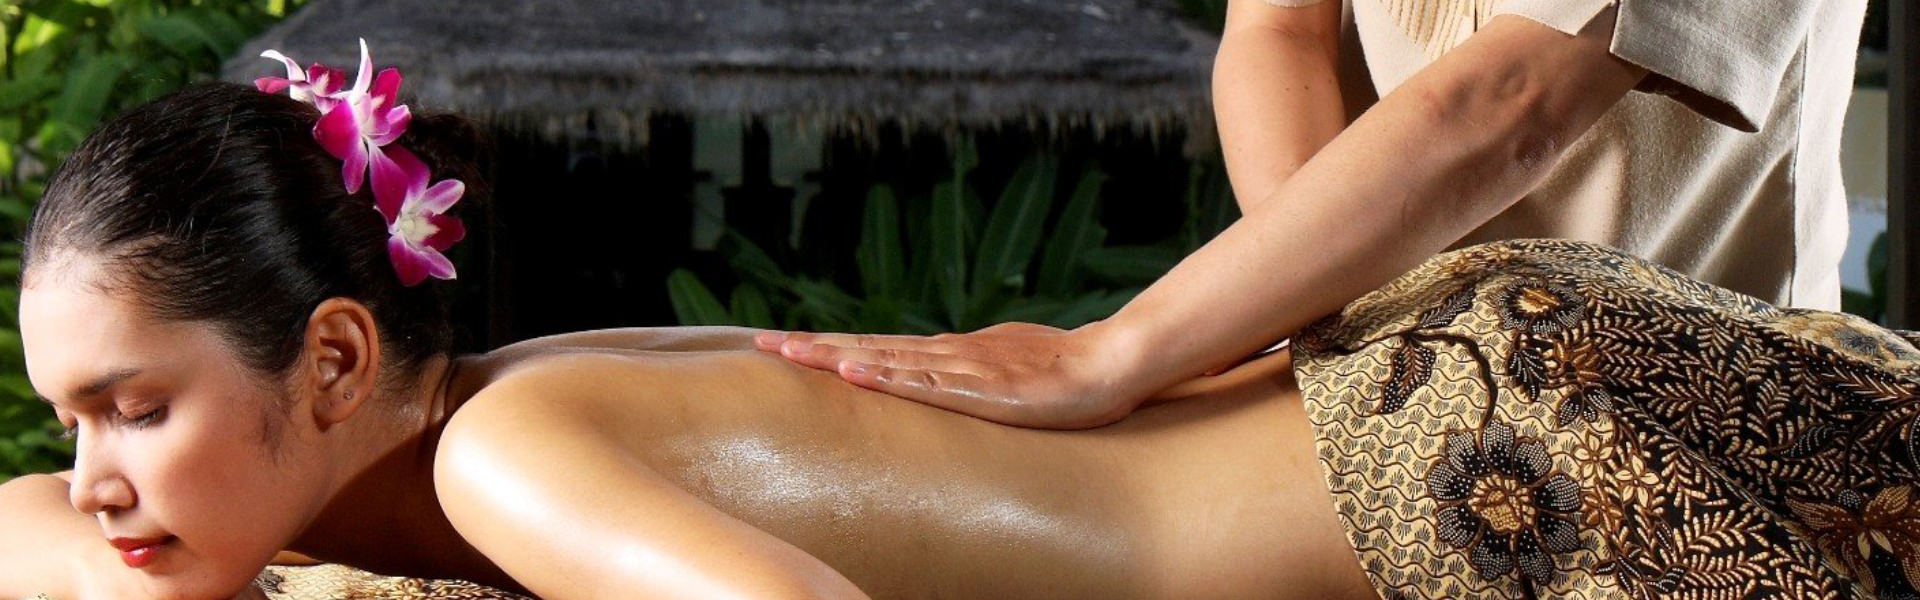 bdsm video solbjerg thai massage